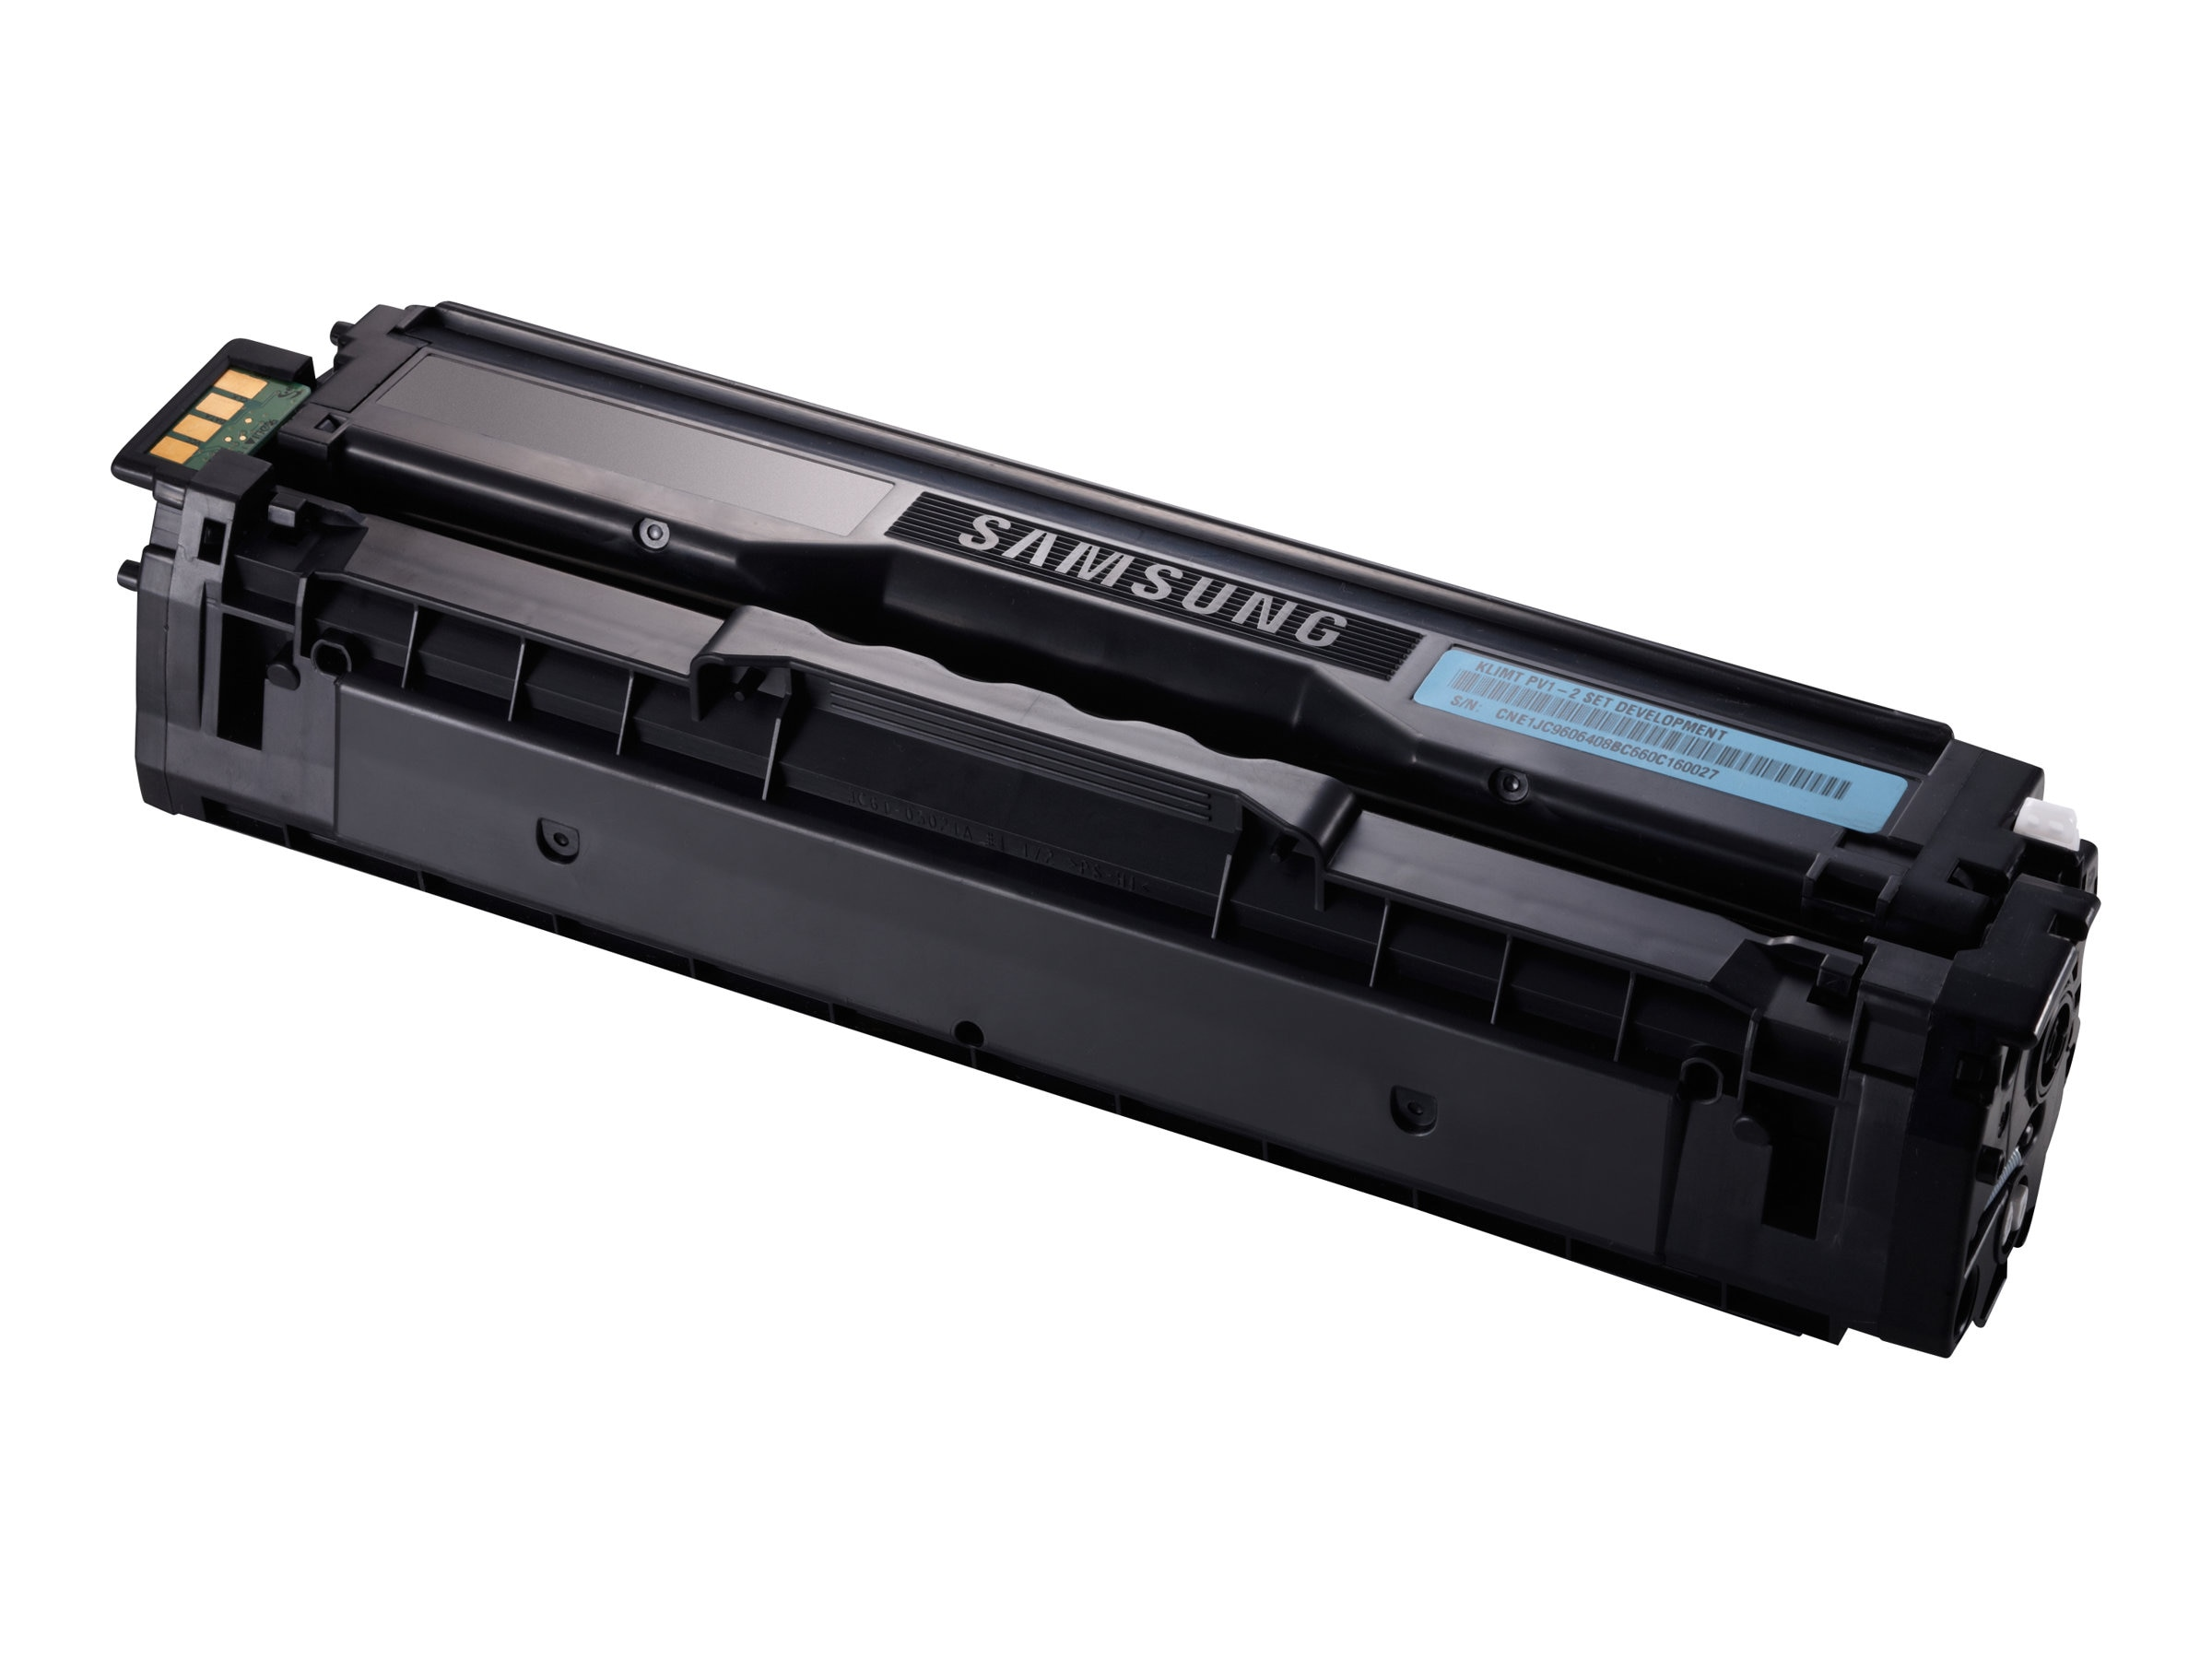 Samsung Cyan Toner Cartridge for CLP-415NW Color Laser Printer &  CLX-4195FW Color Multifunction Printer